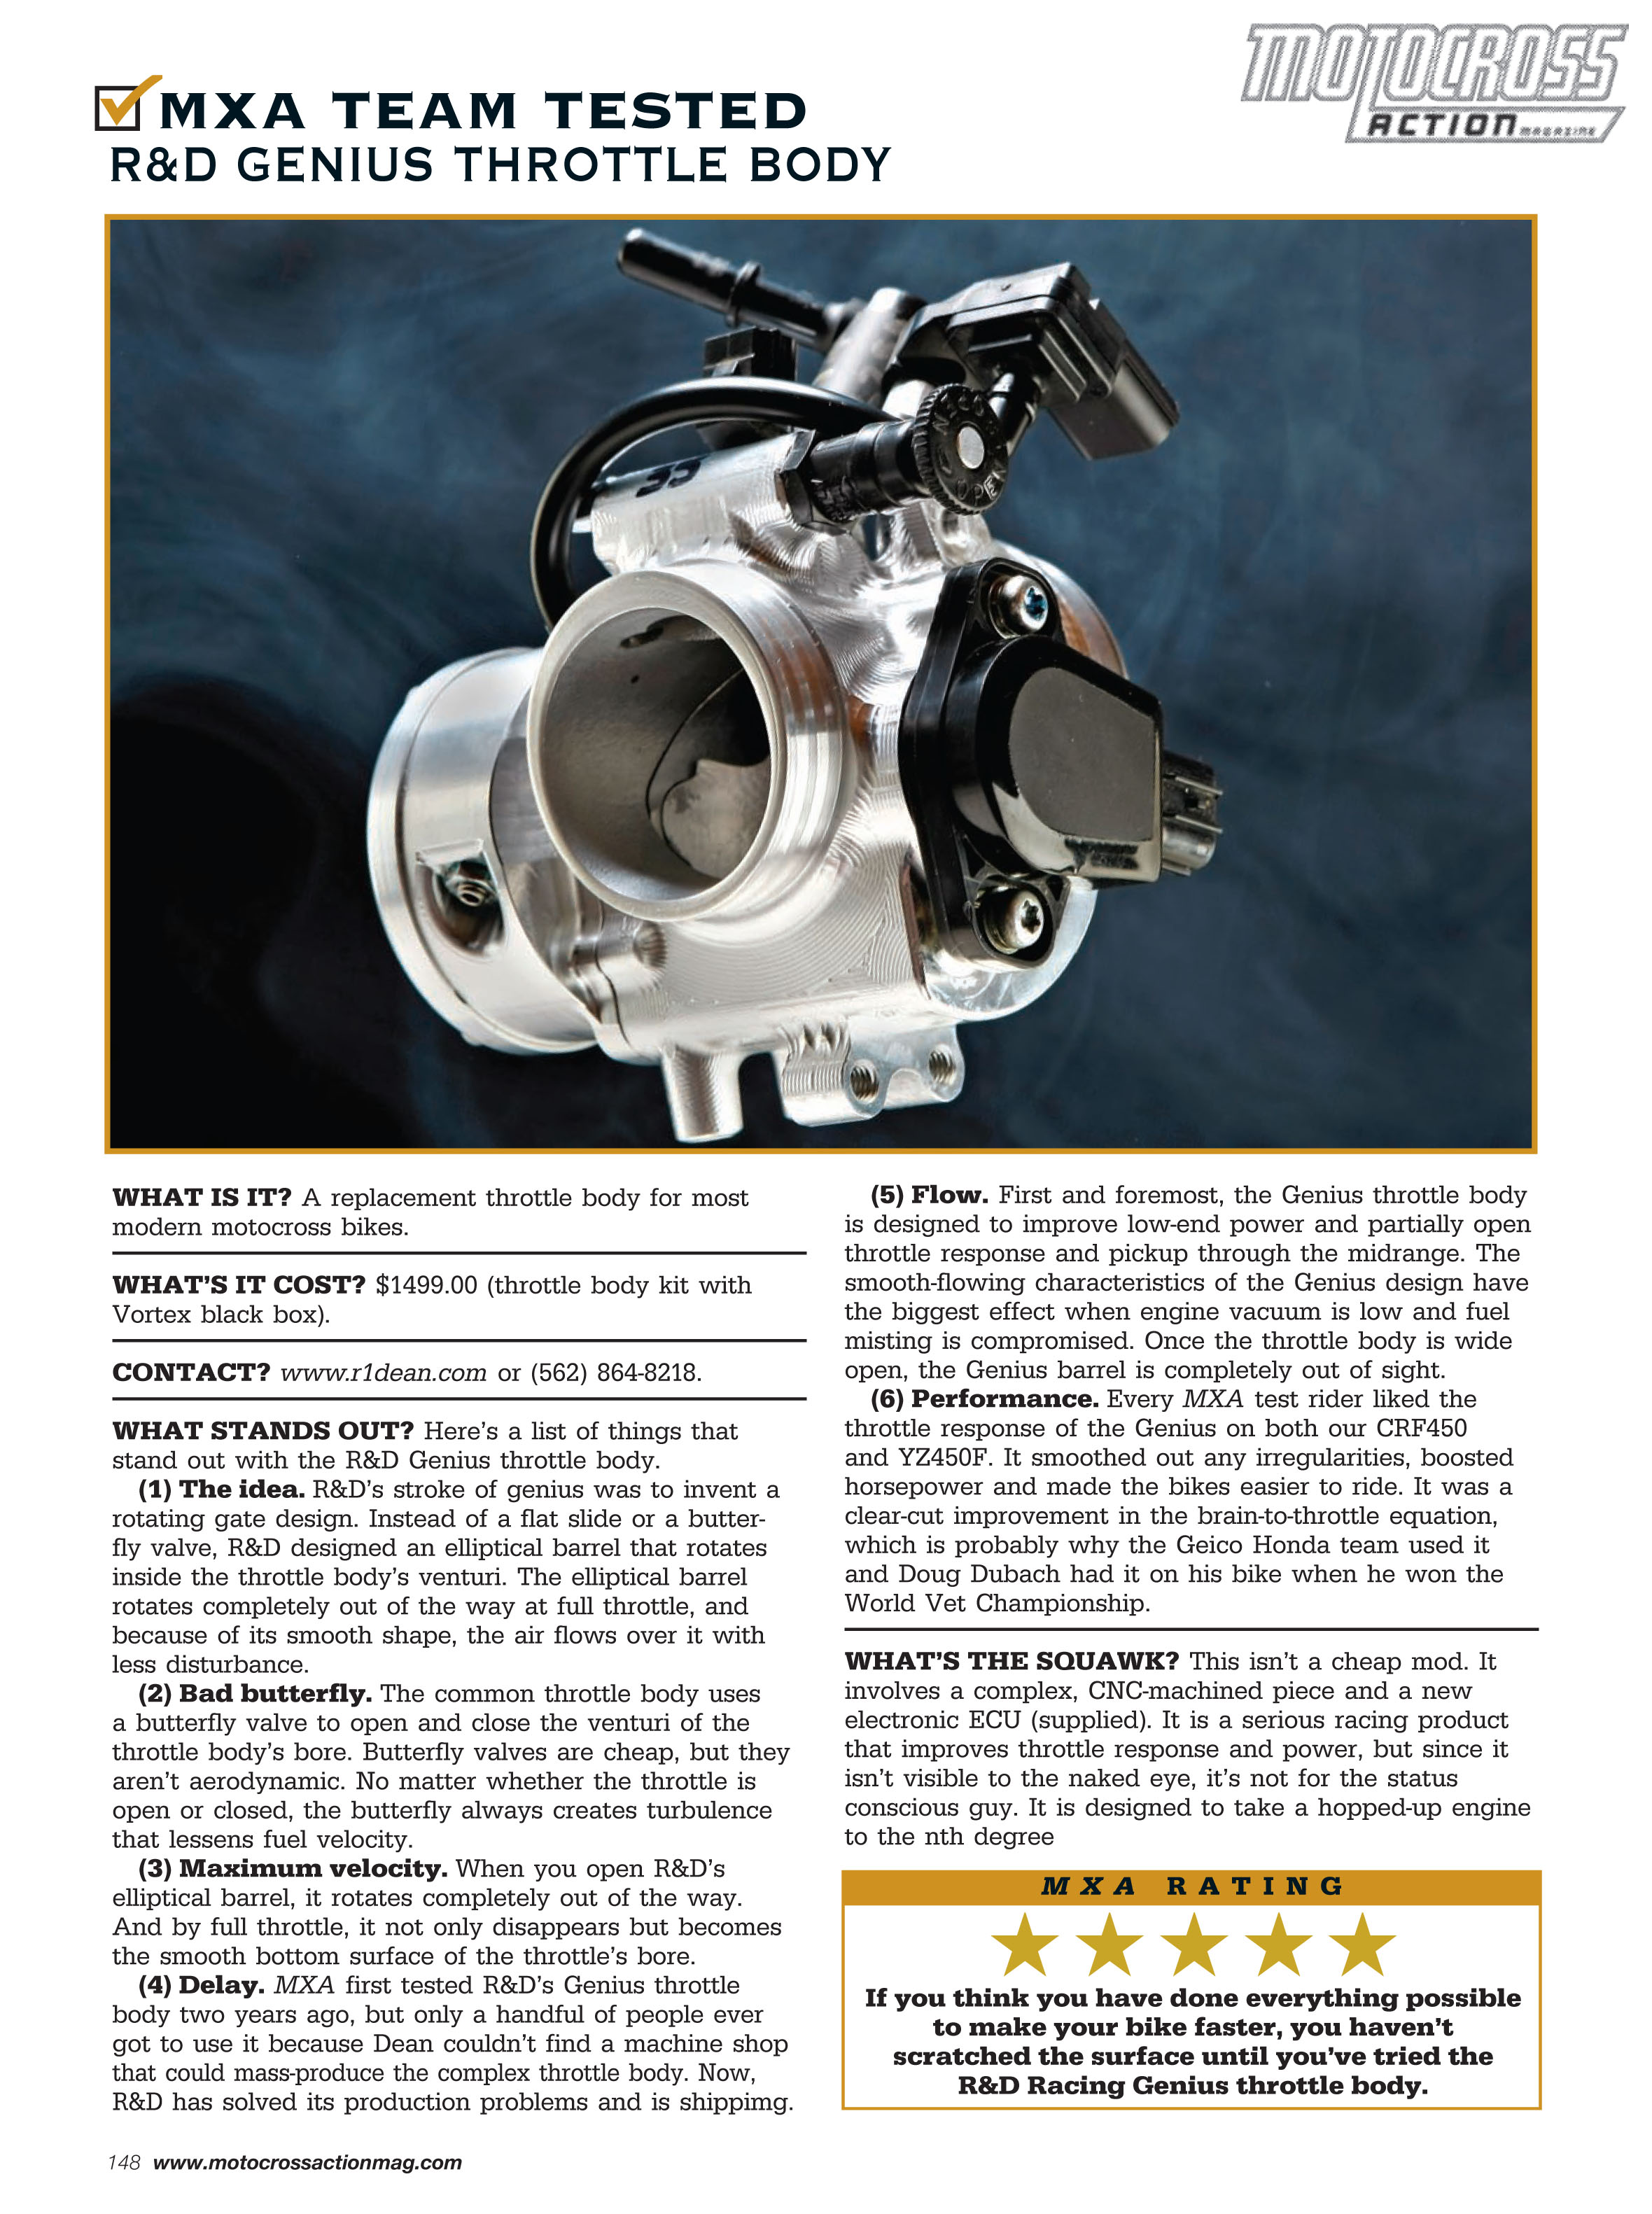 MXA Team Tested R&D Genius Throttle Body